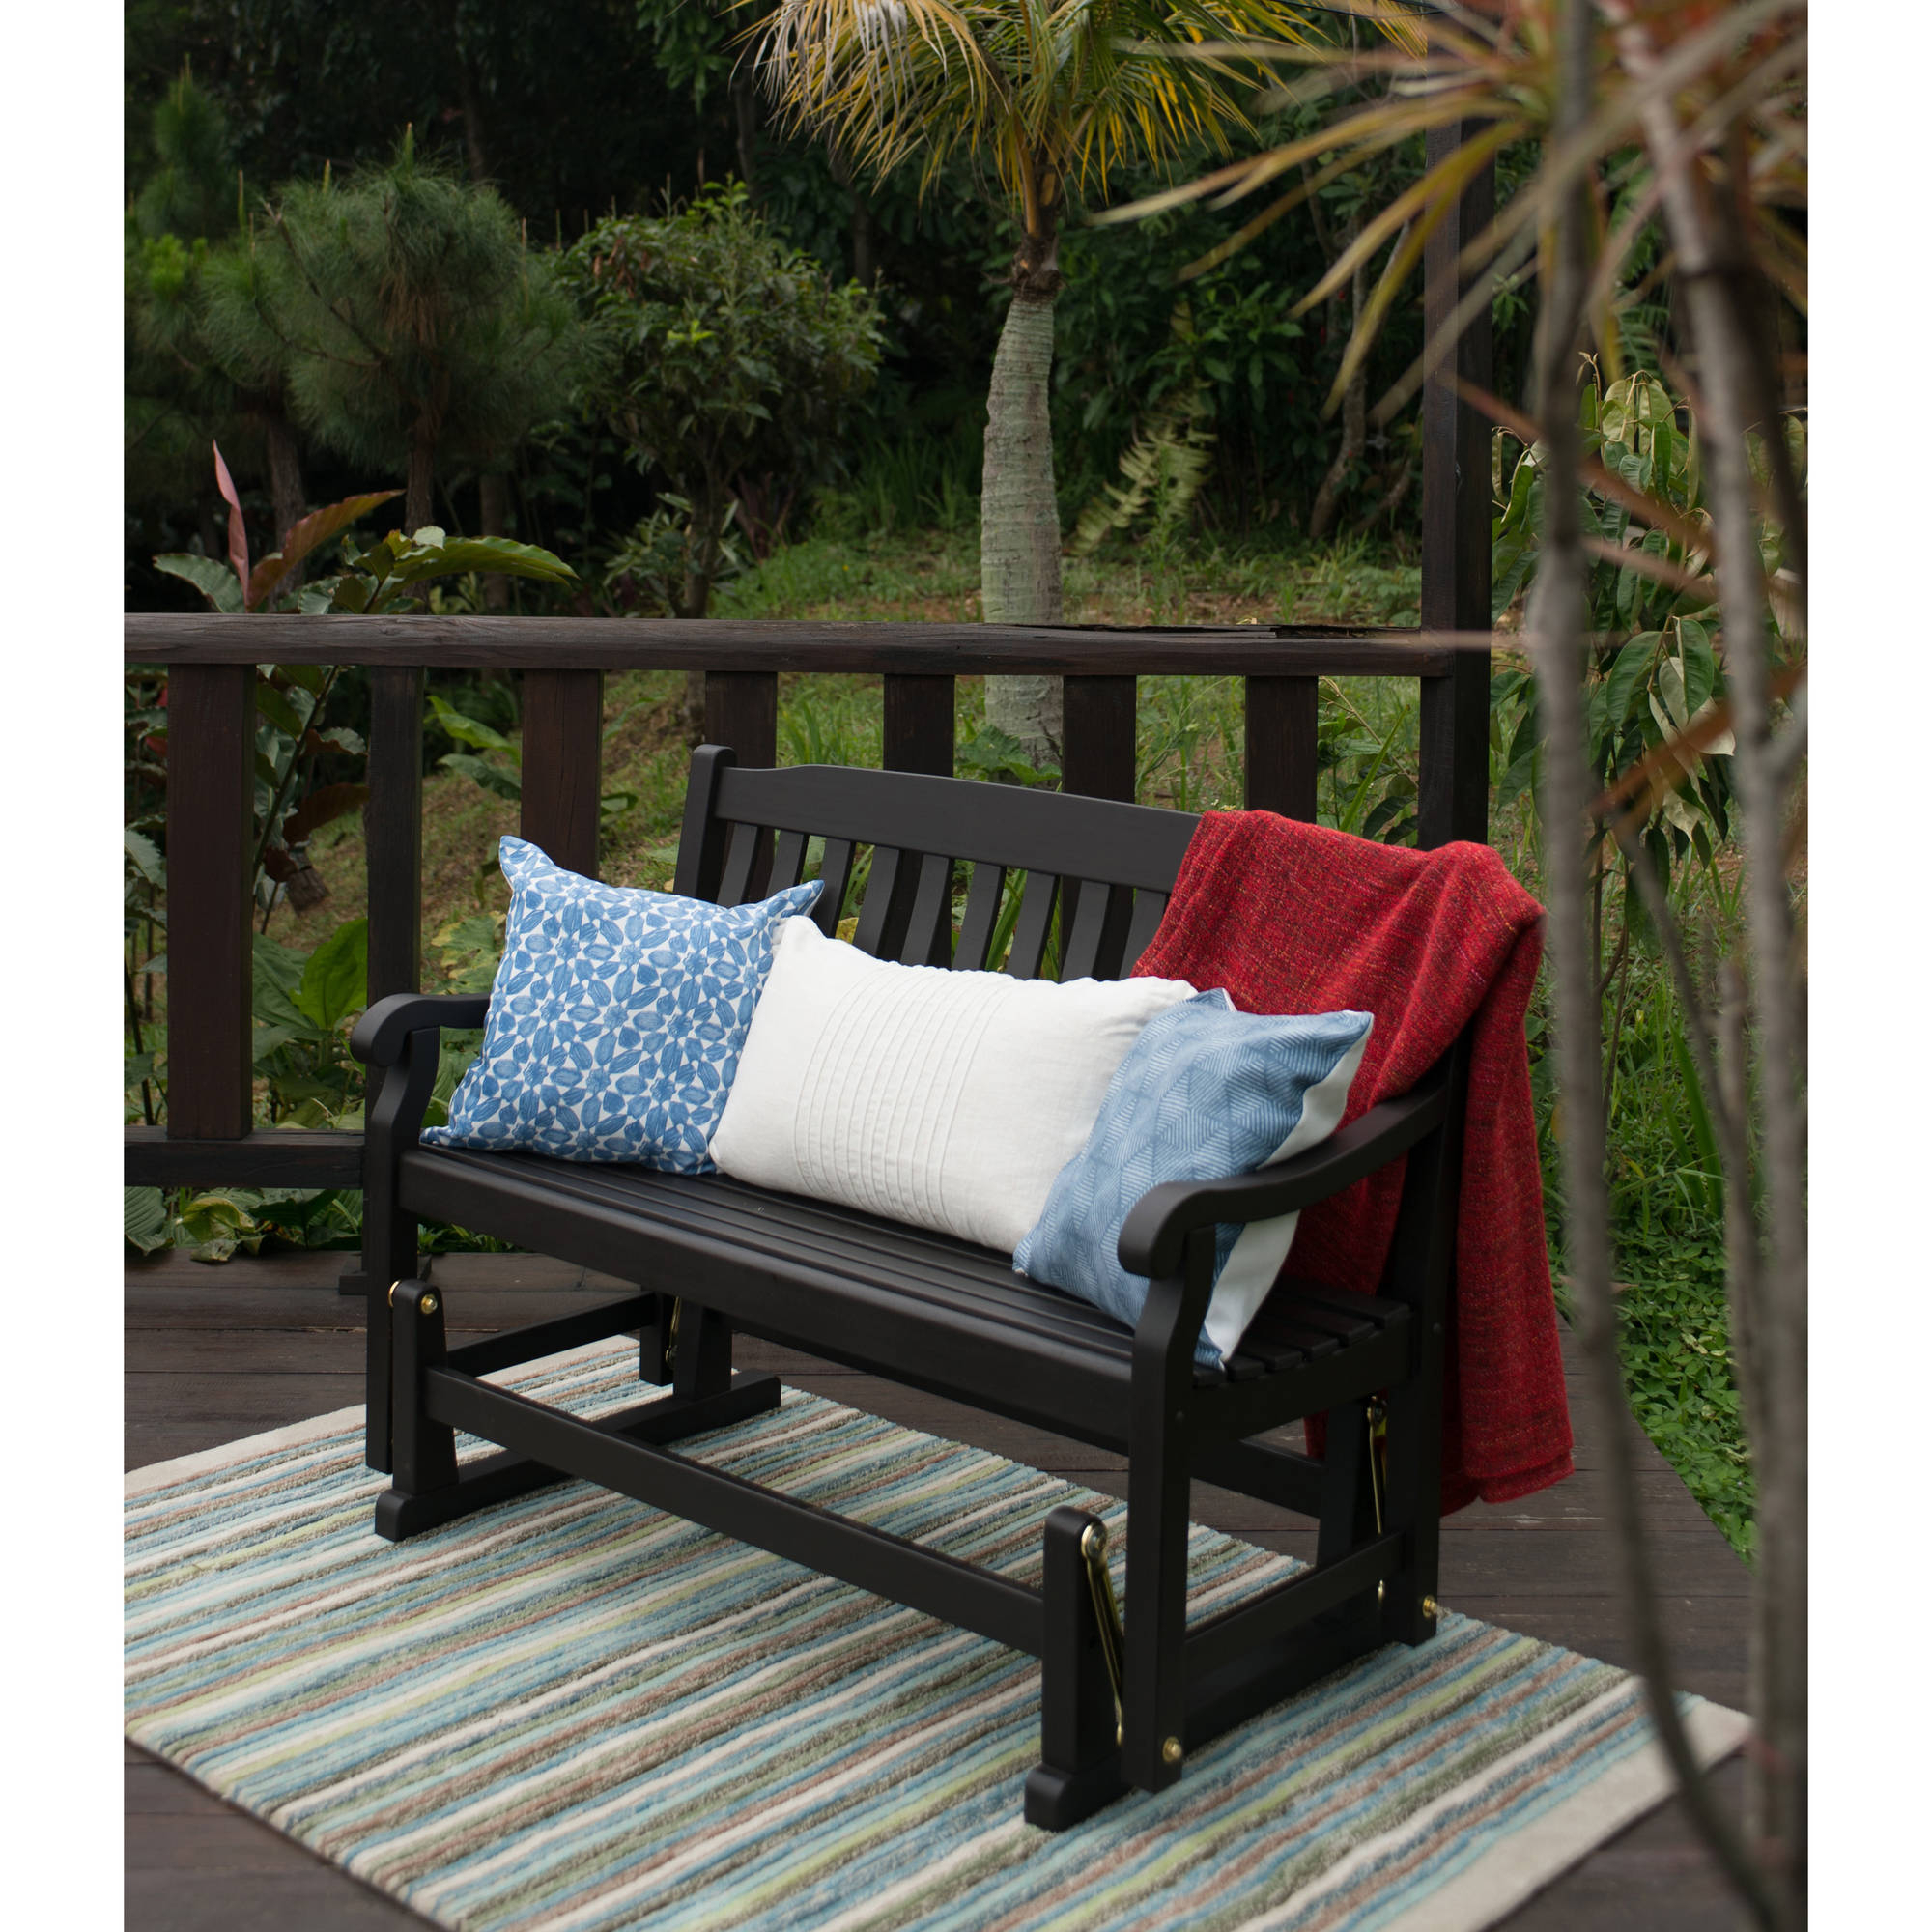 Better Homes & Gardens Delahey Outdoor Glider Bench, Dark Regarding Fashionable Glider Benches With Cushions (Gallery 8 of 30)